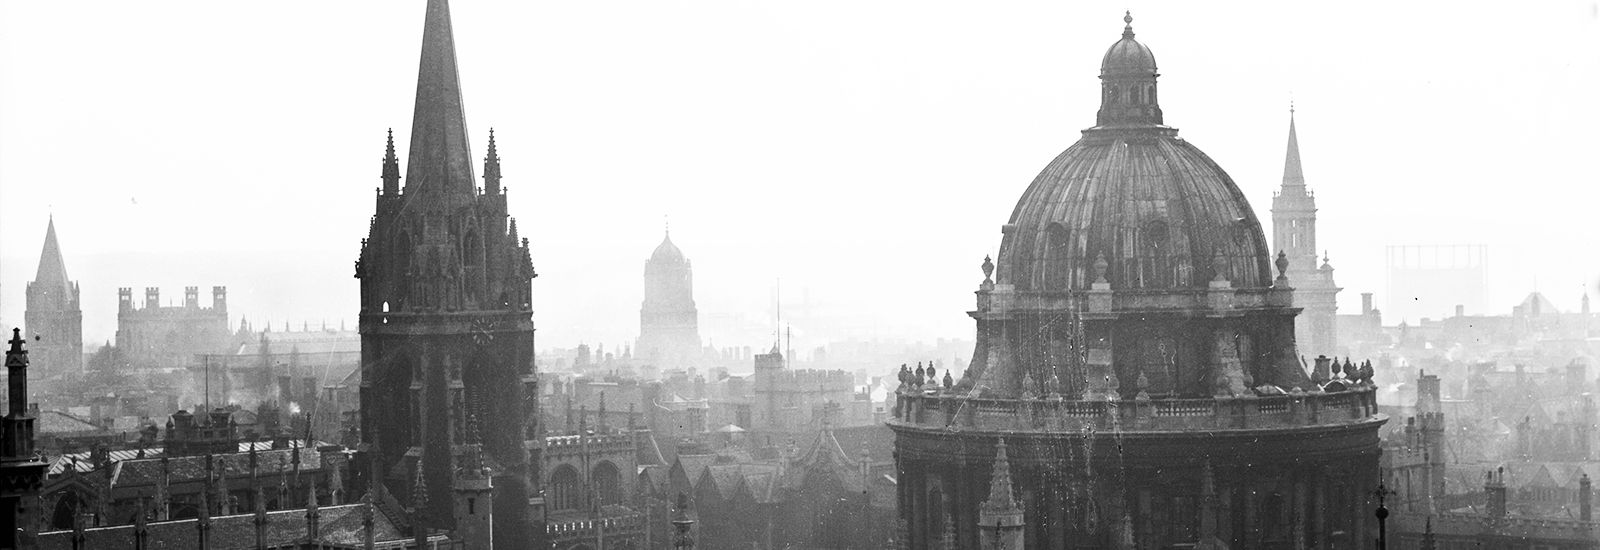 A black-and-white photograph of Oxford's skyline, 1930